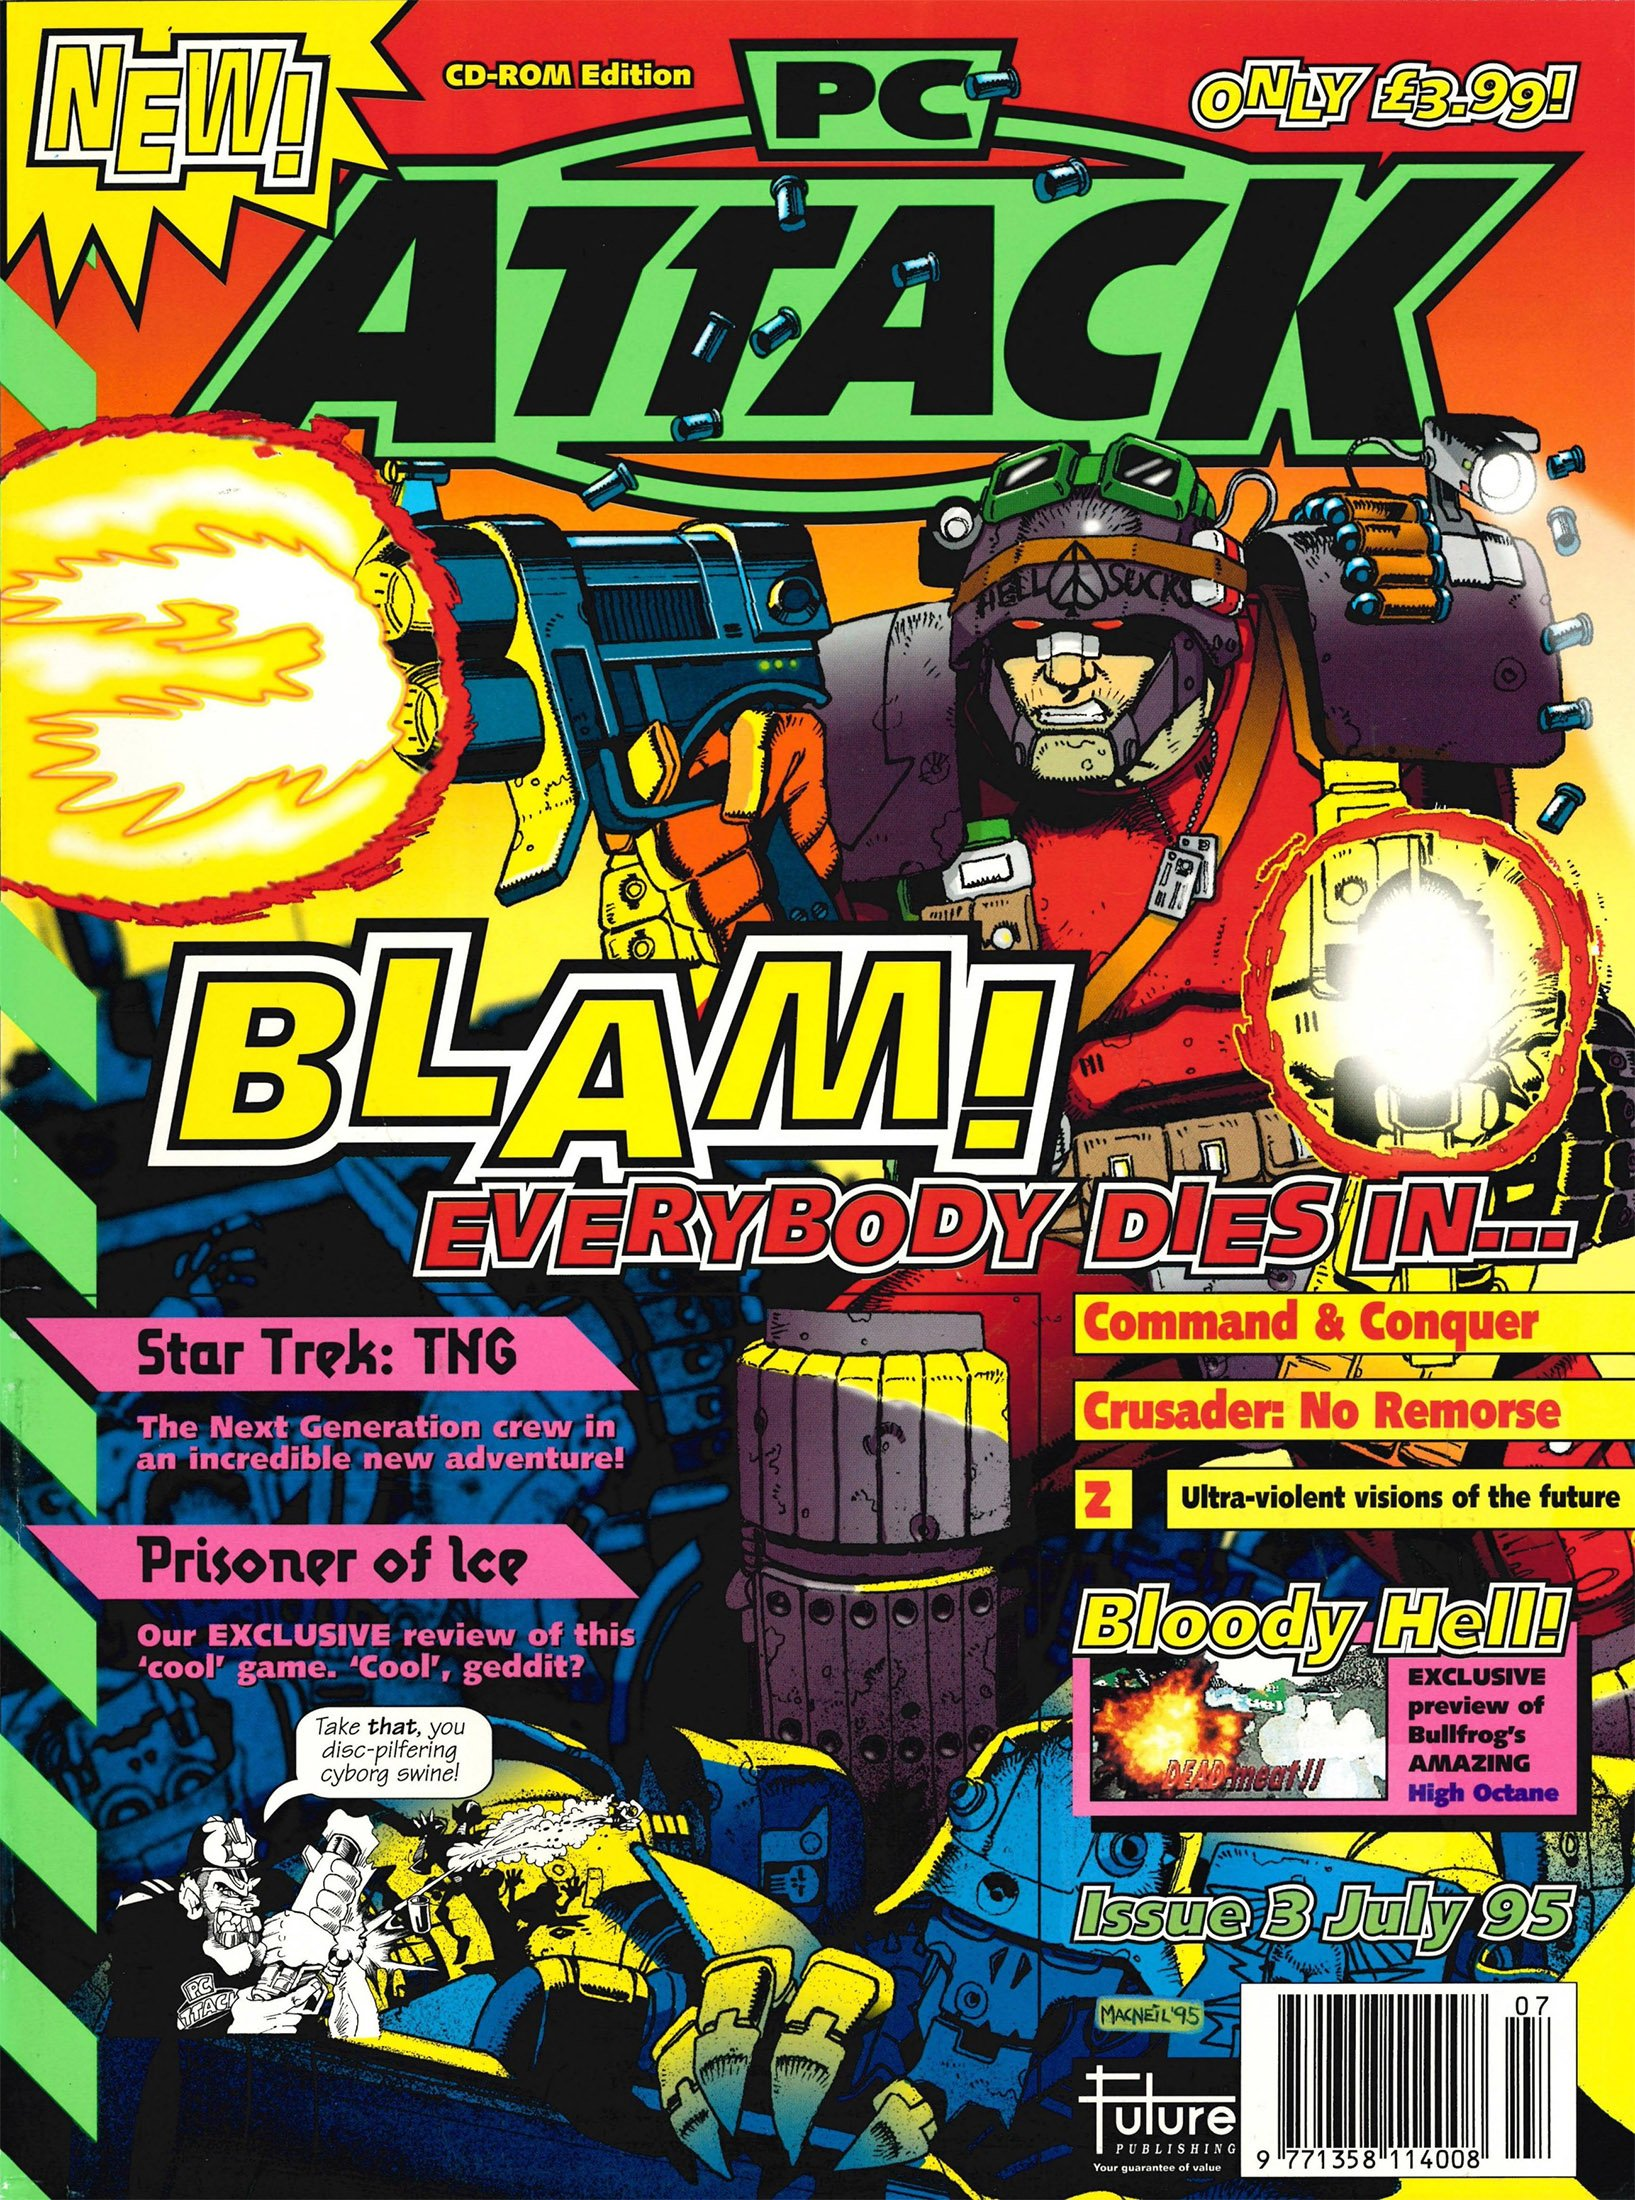 PC Attack Issue 03 (July 1995)